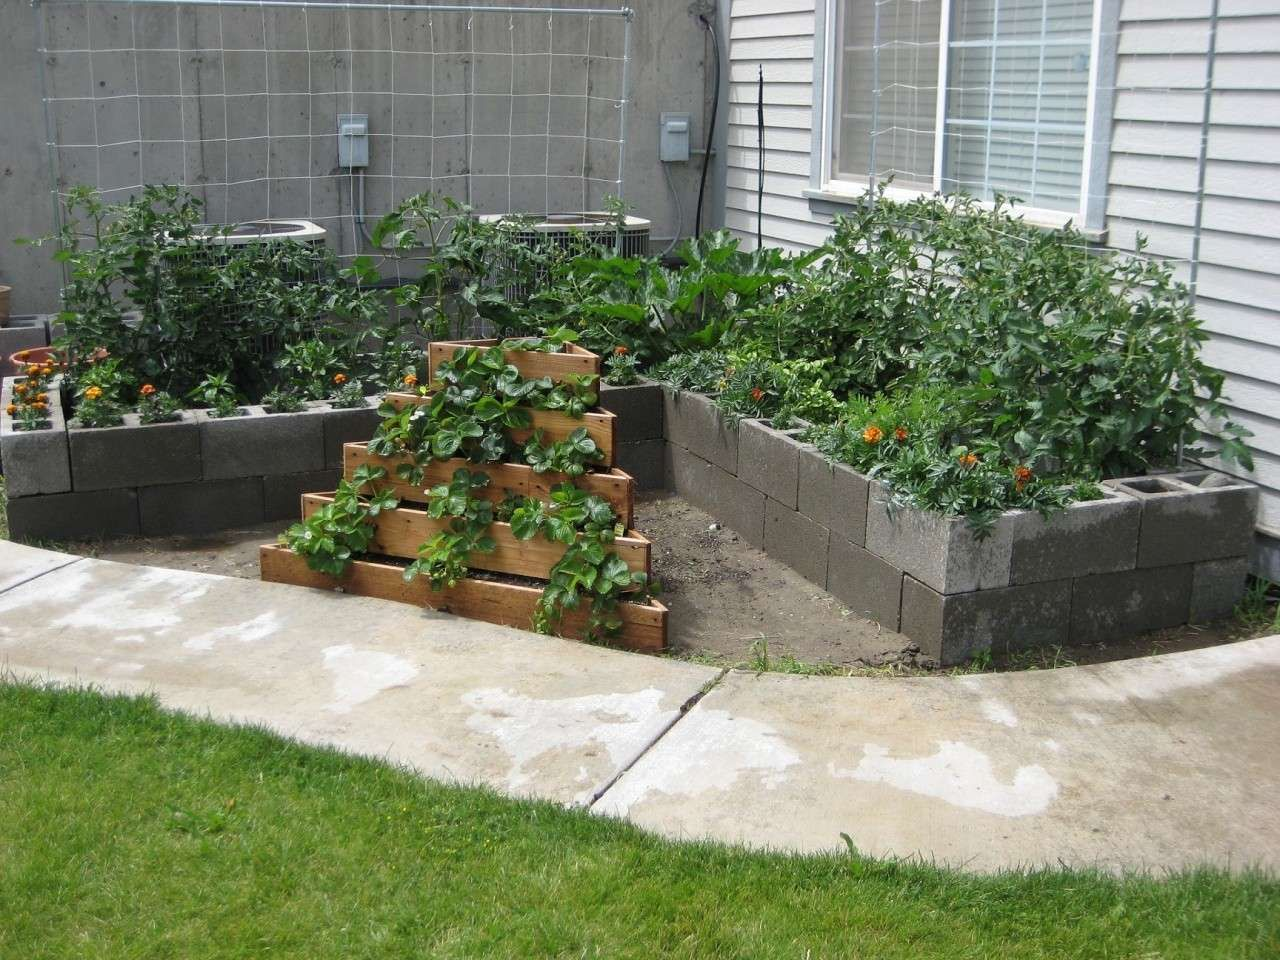 Concrete Block Gardens A Collection Of Gardening Ideas To Try